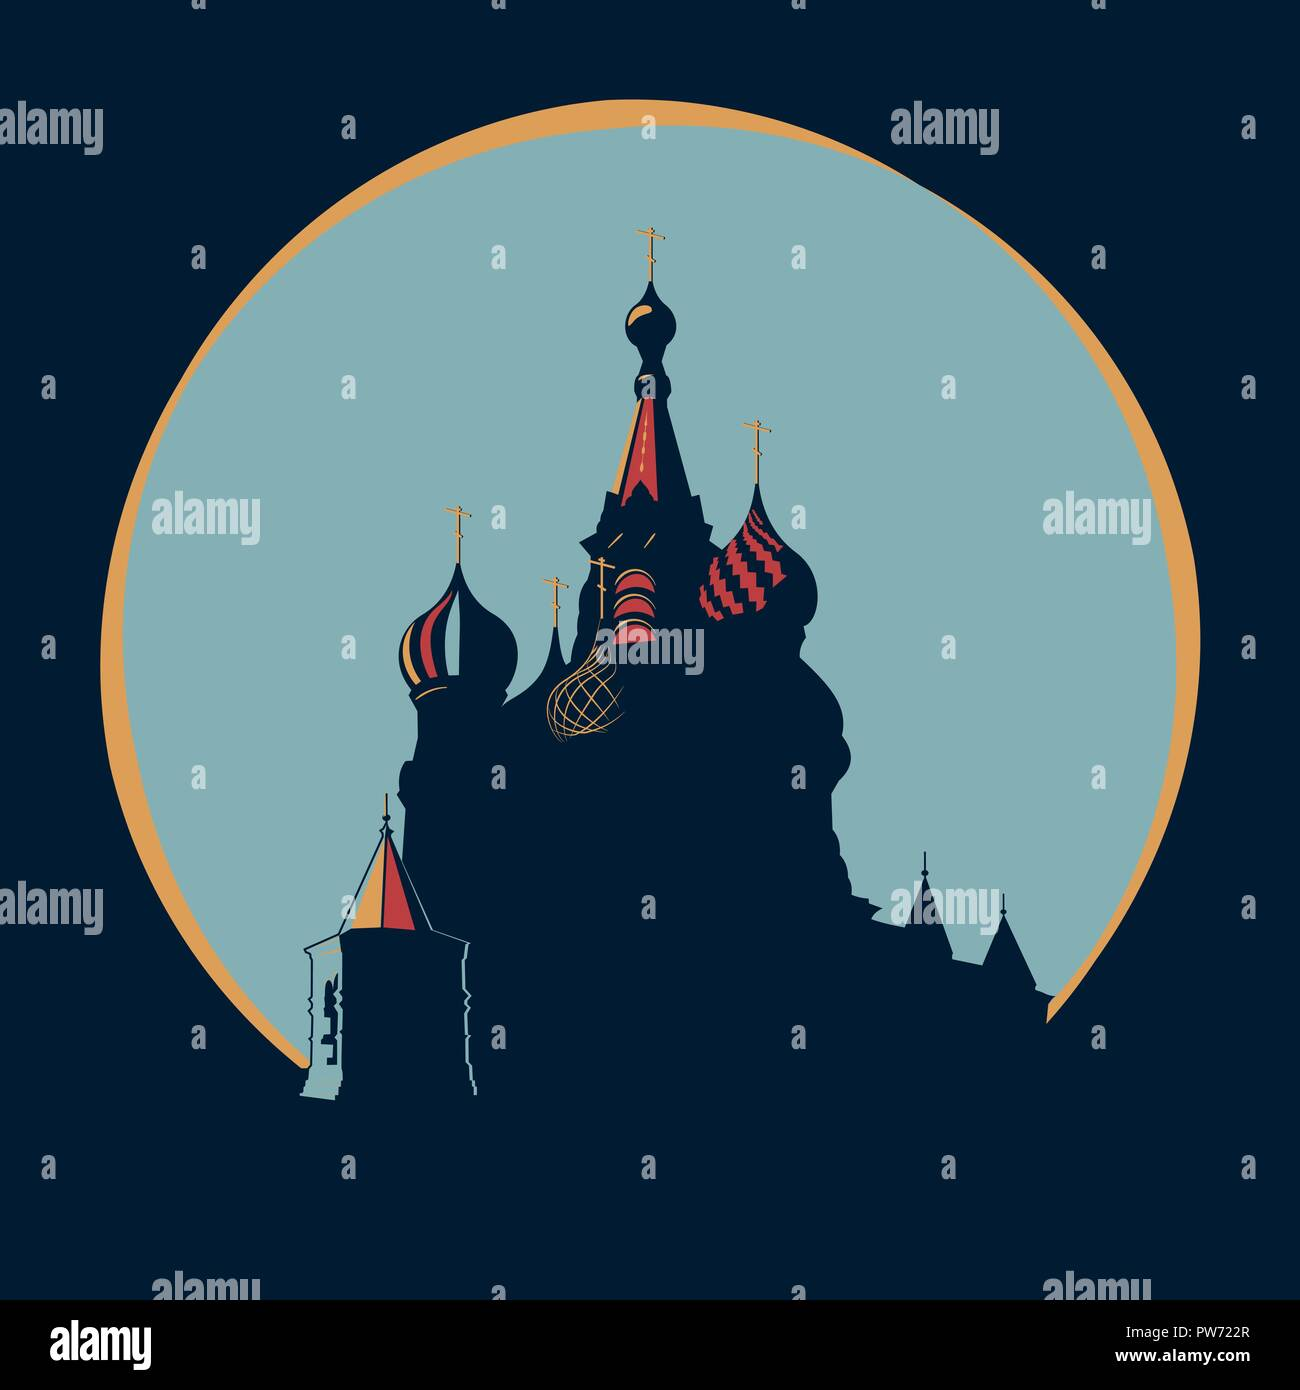 Vasily The Blessed Temple in original style - Stock Vector